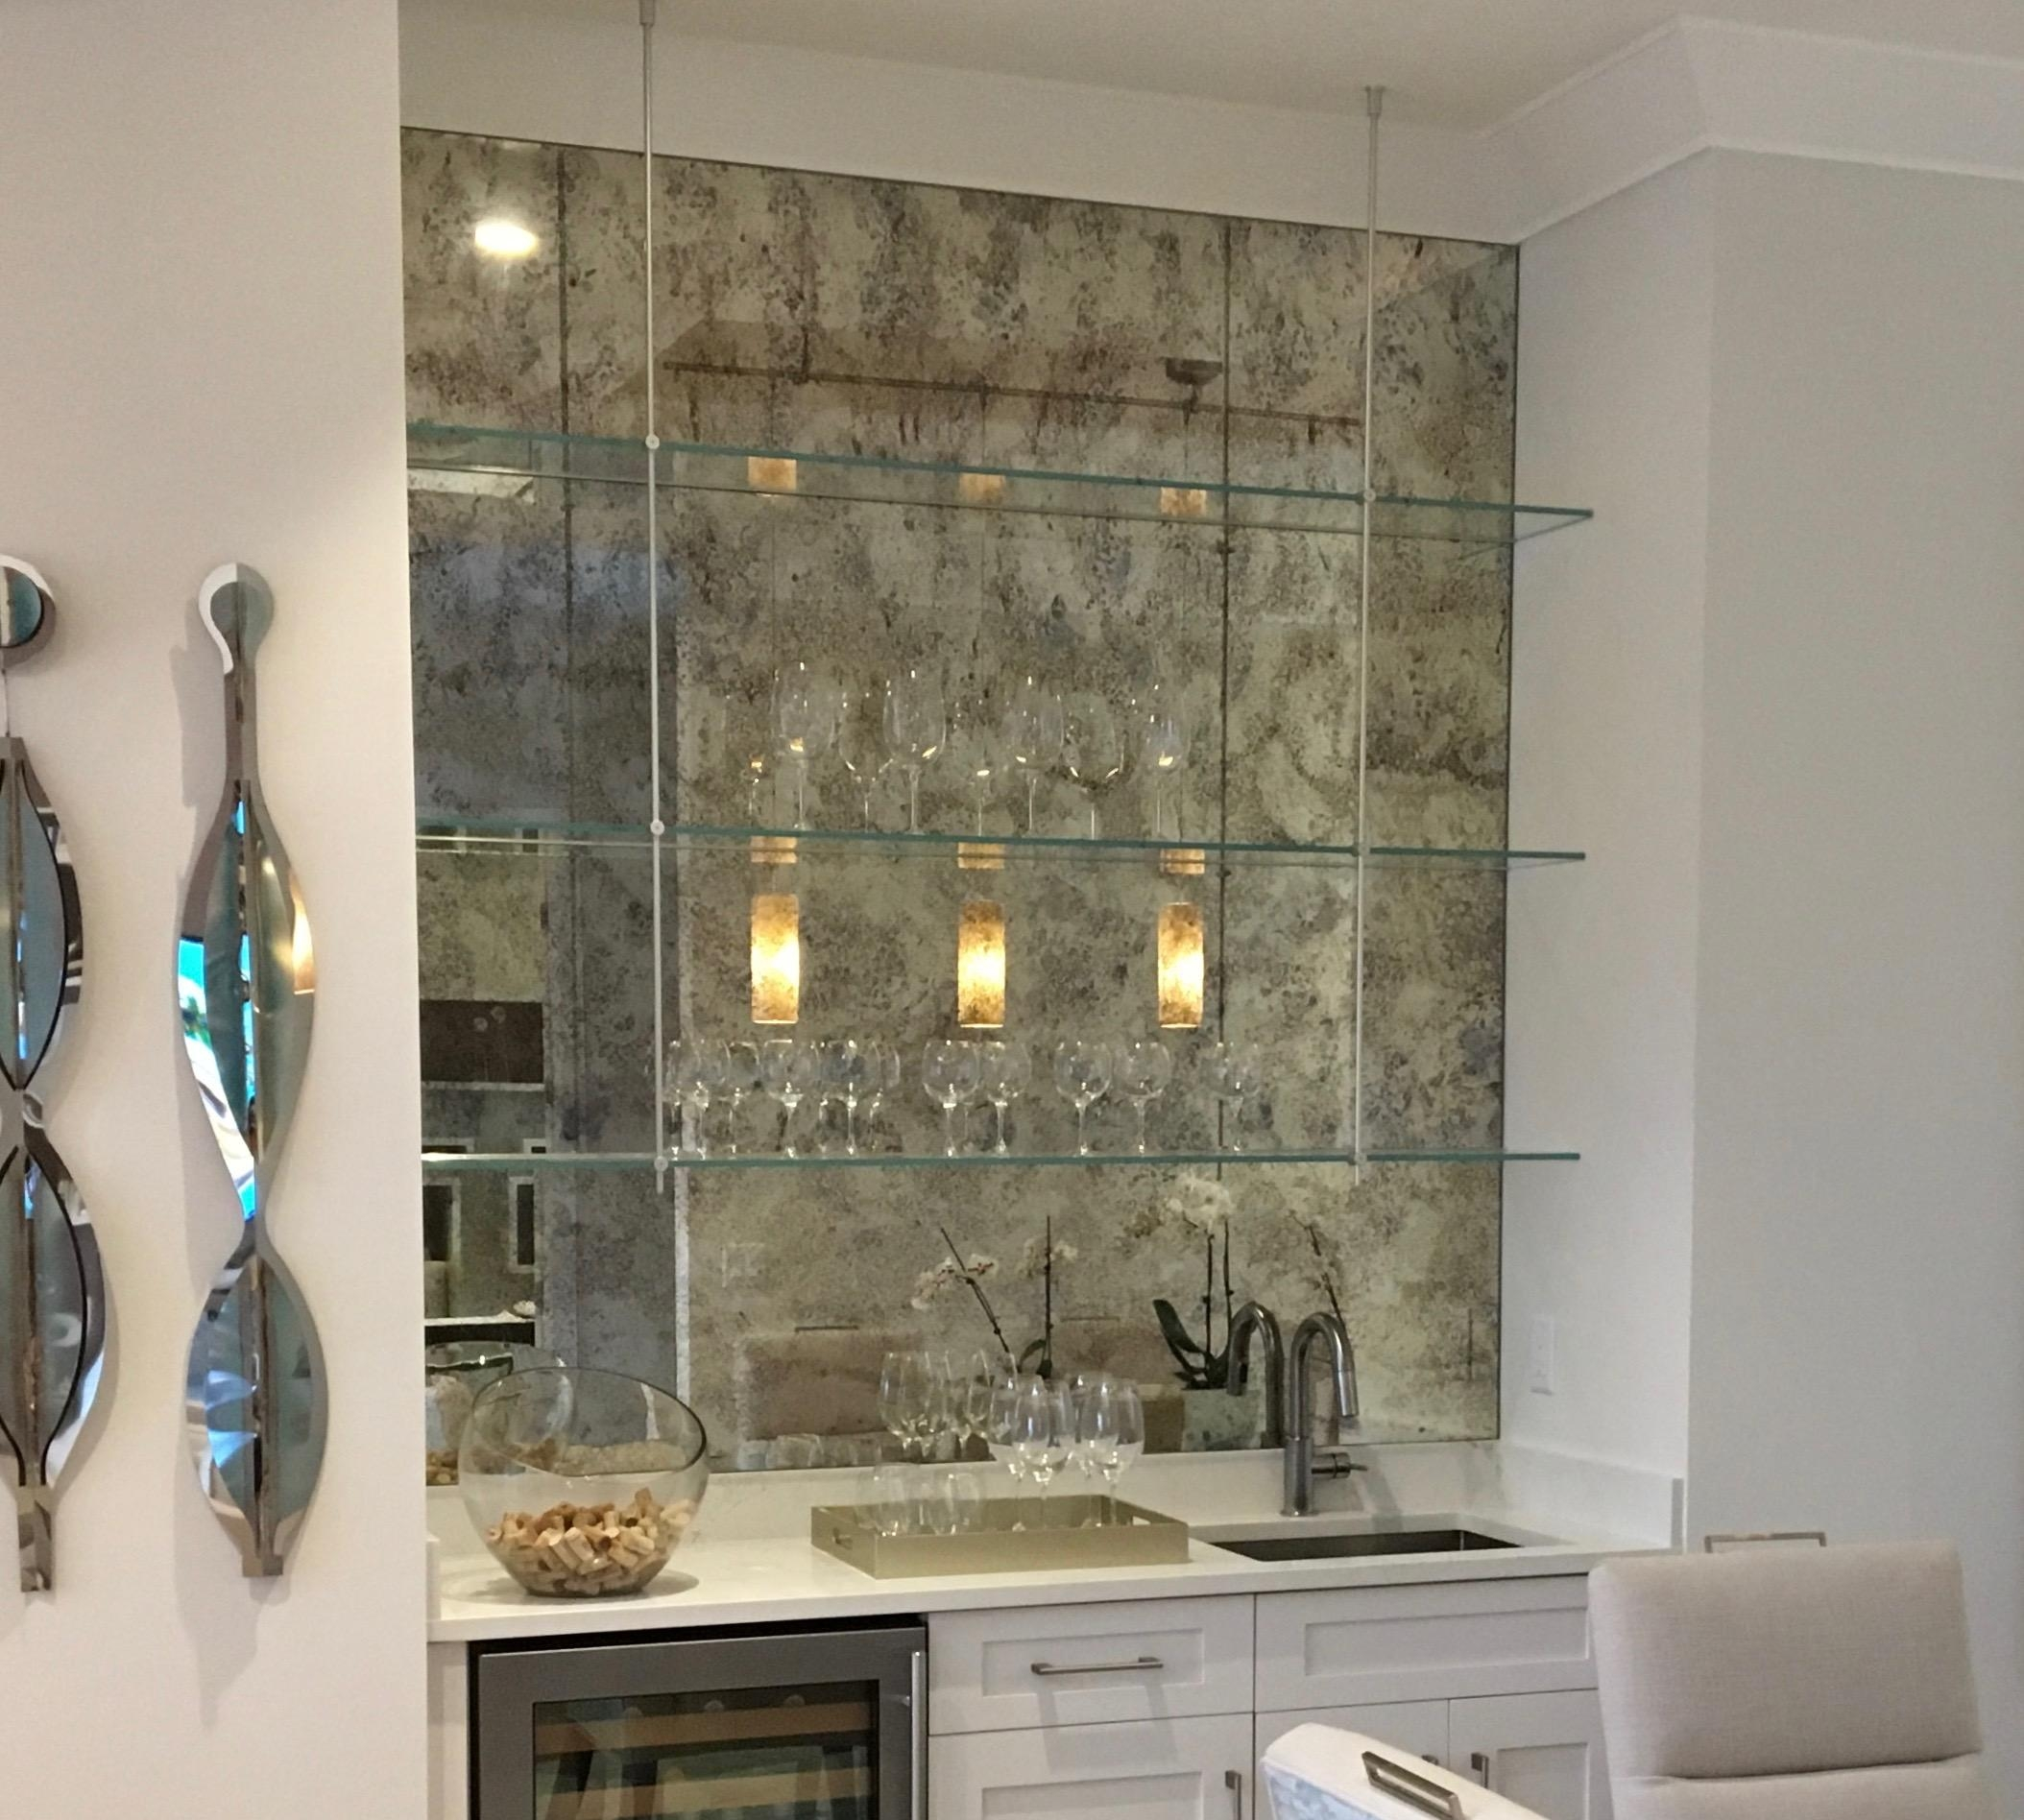 Antique Mirror Subway Tiles – Builders Glass Of Bonita, Inc (View 13 of 20)